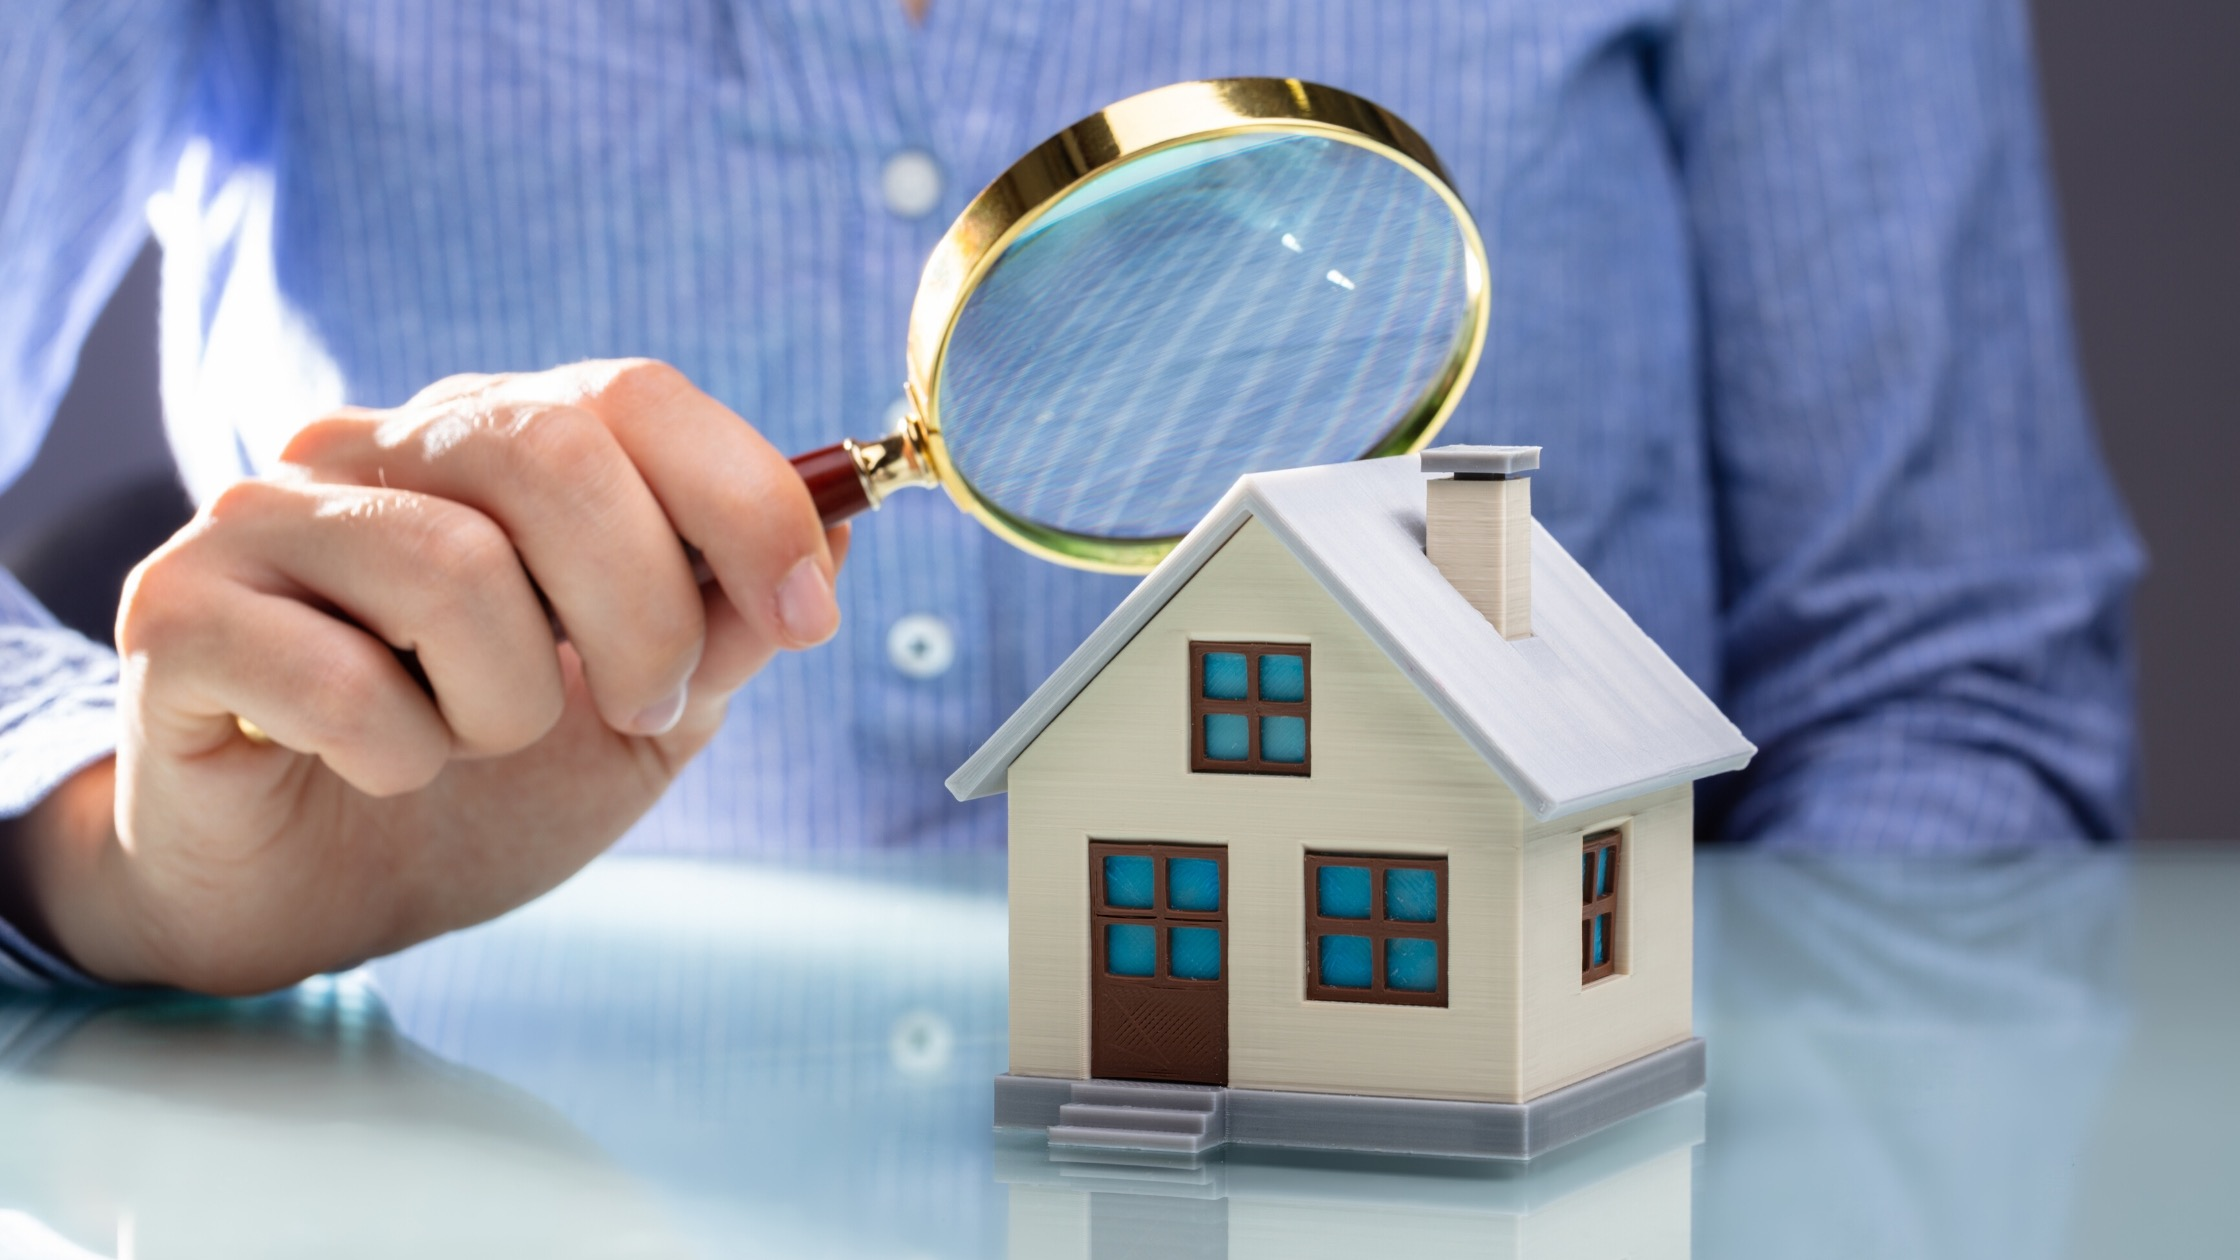 Home Appraisal Tips For Getting A Higher Appraisal